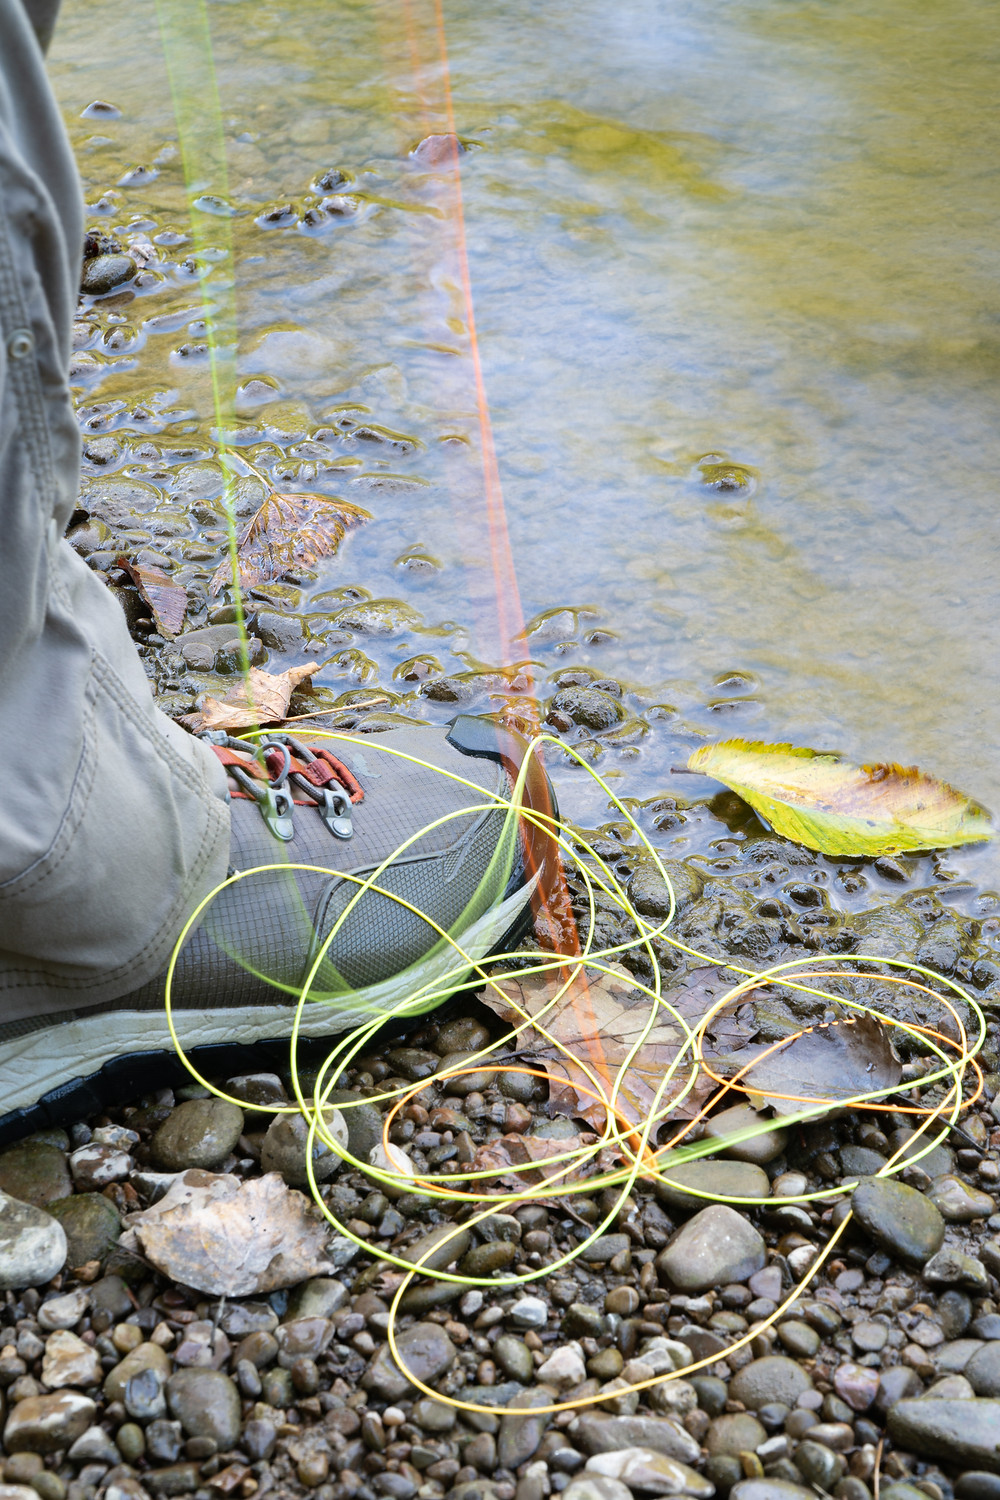 Urban fly fishing clothing and gear